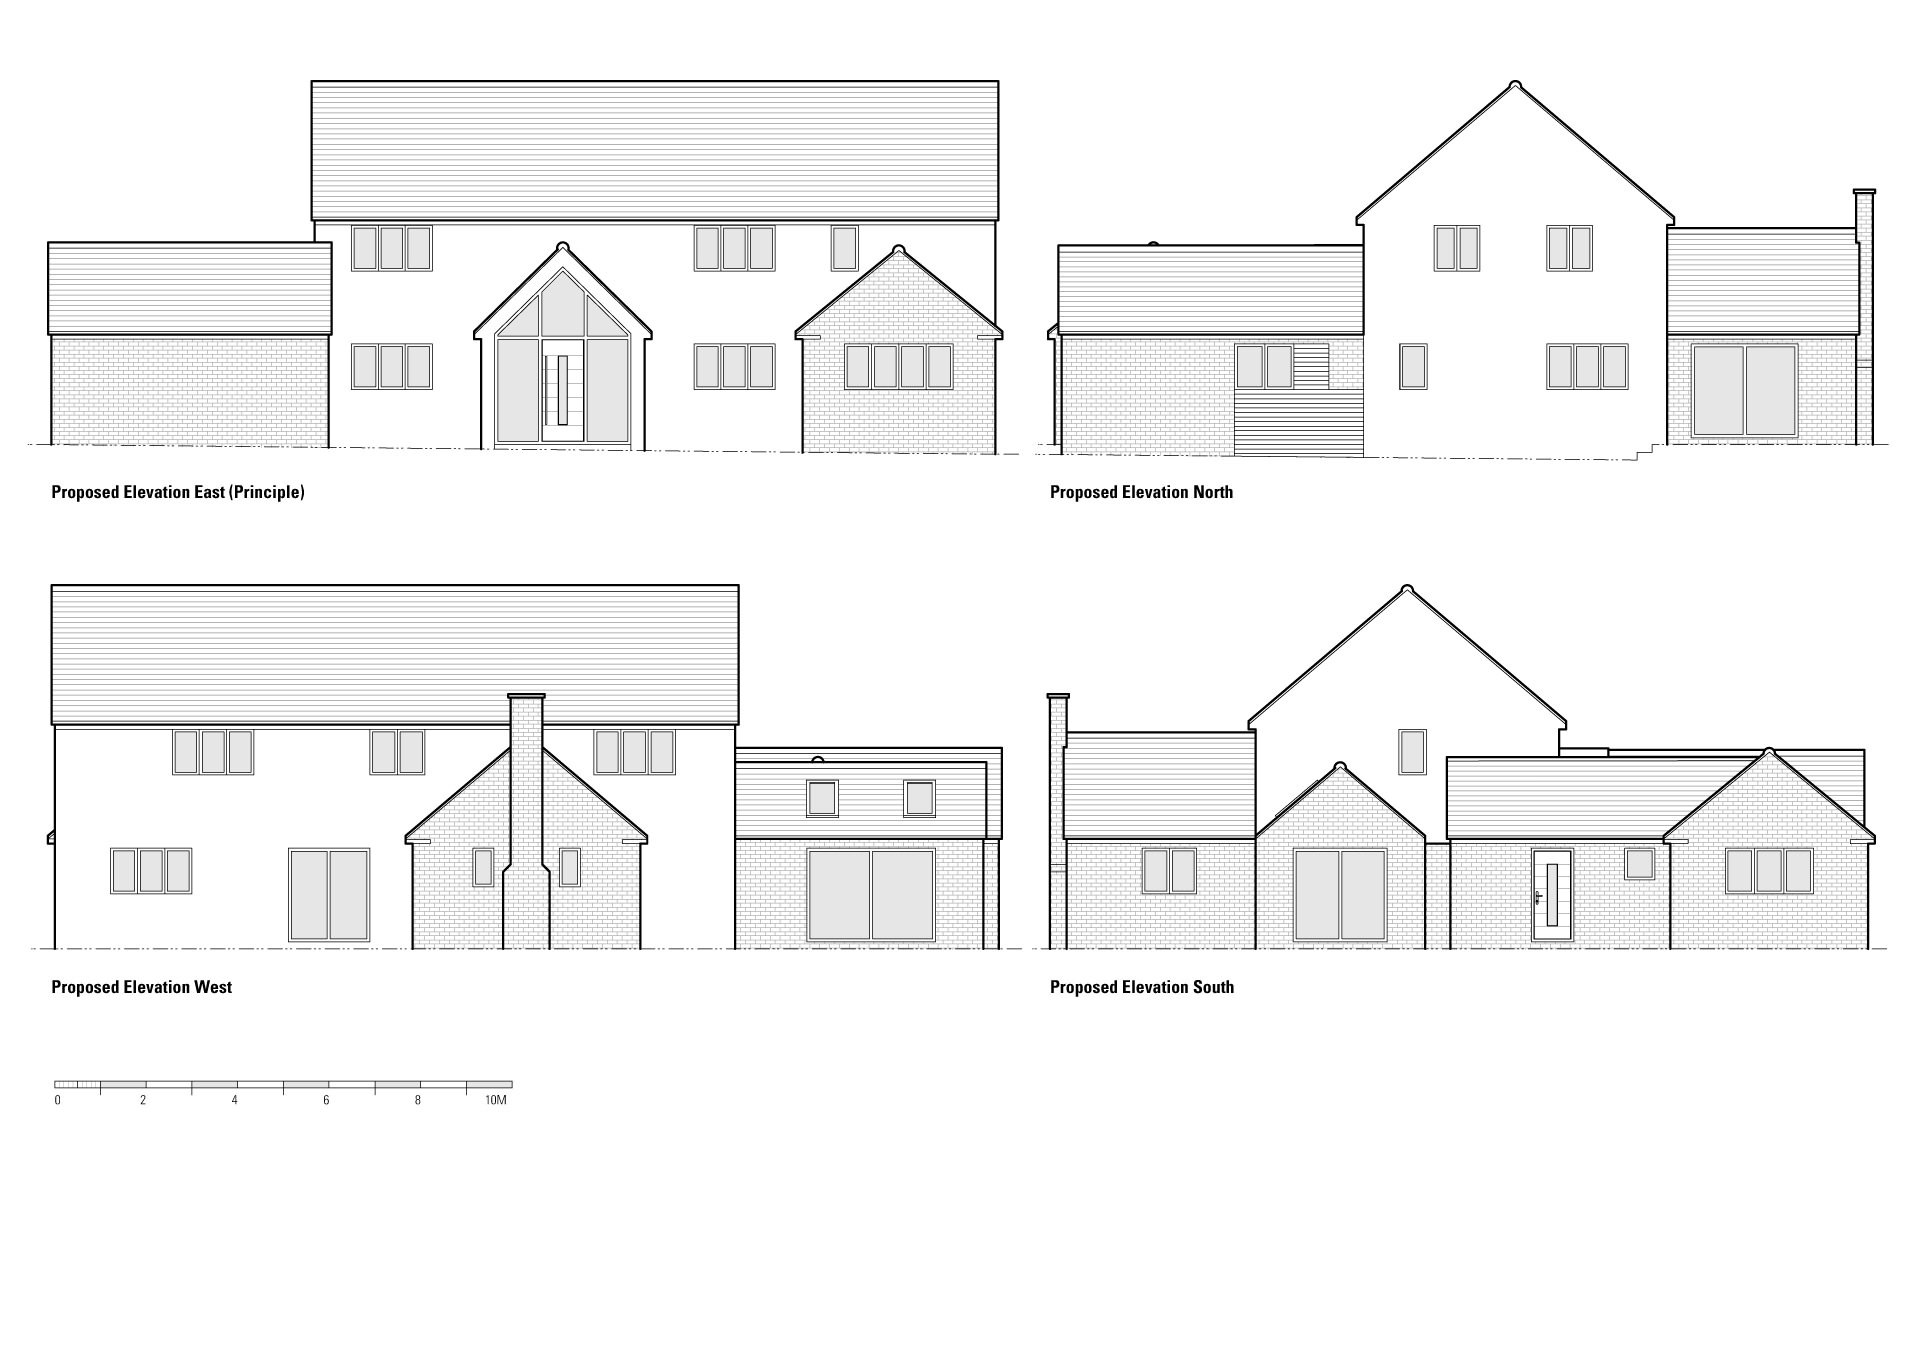 26 218 05A Elevations Proposed.jpg